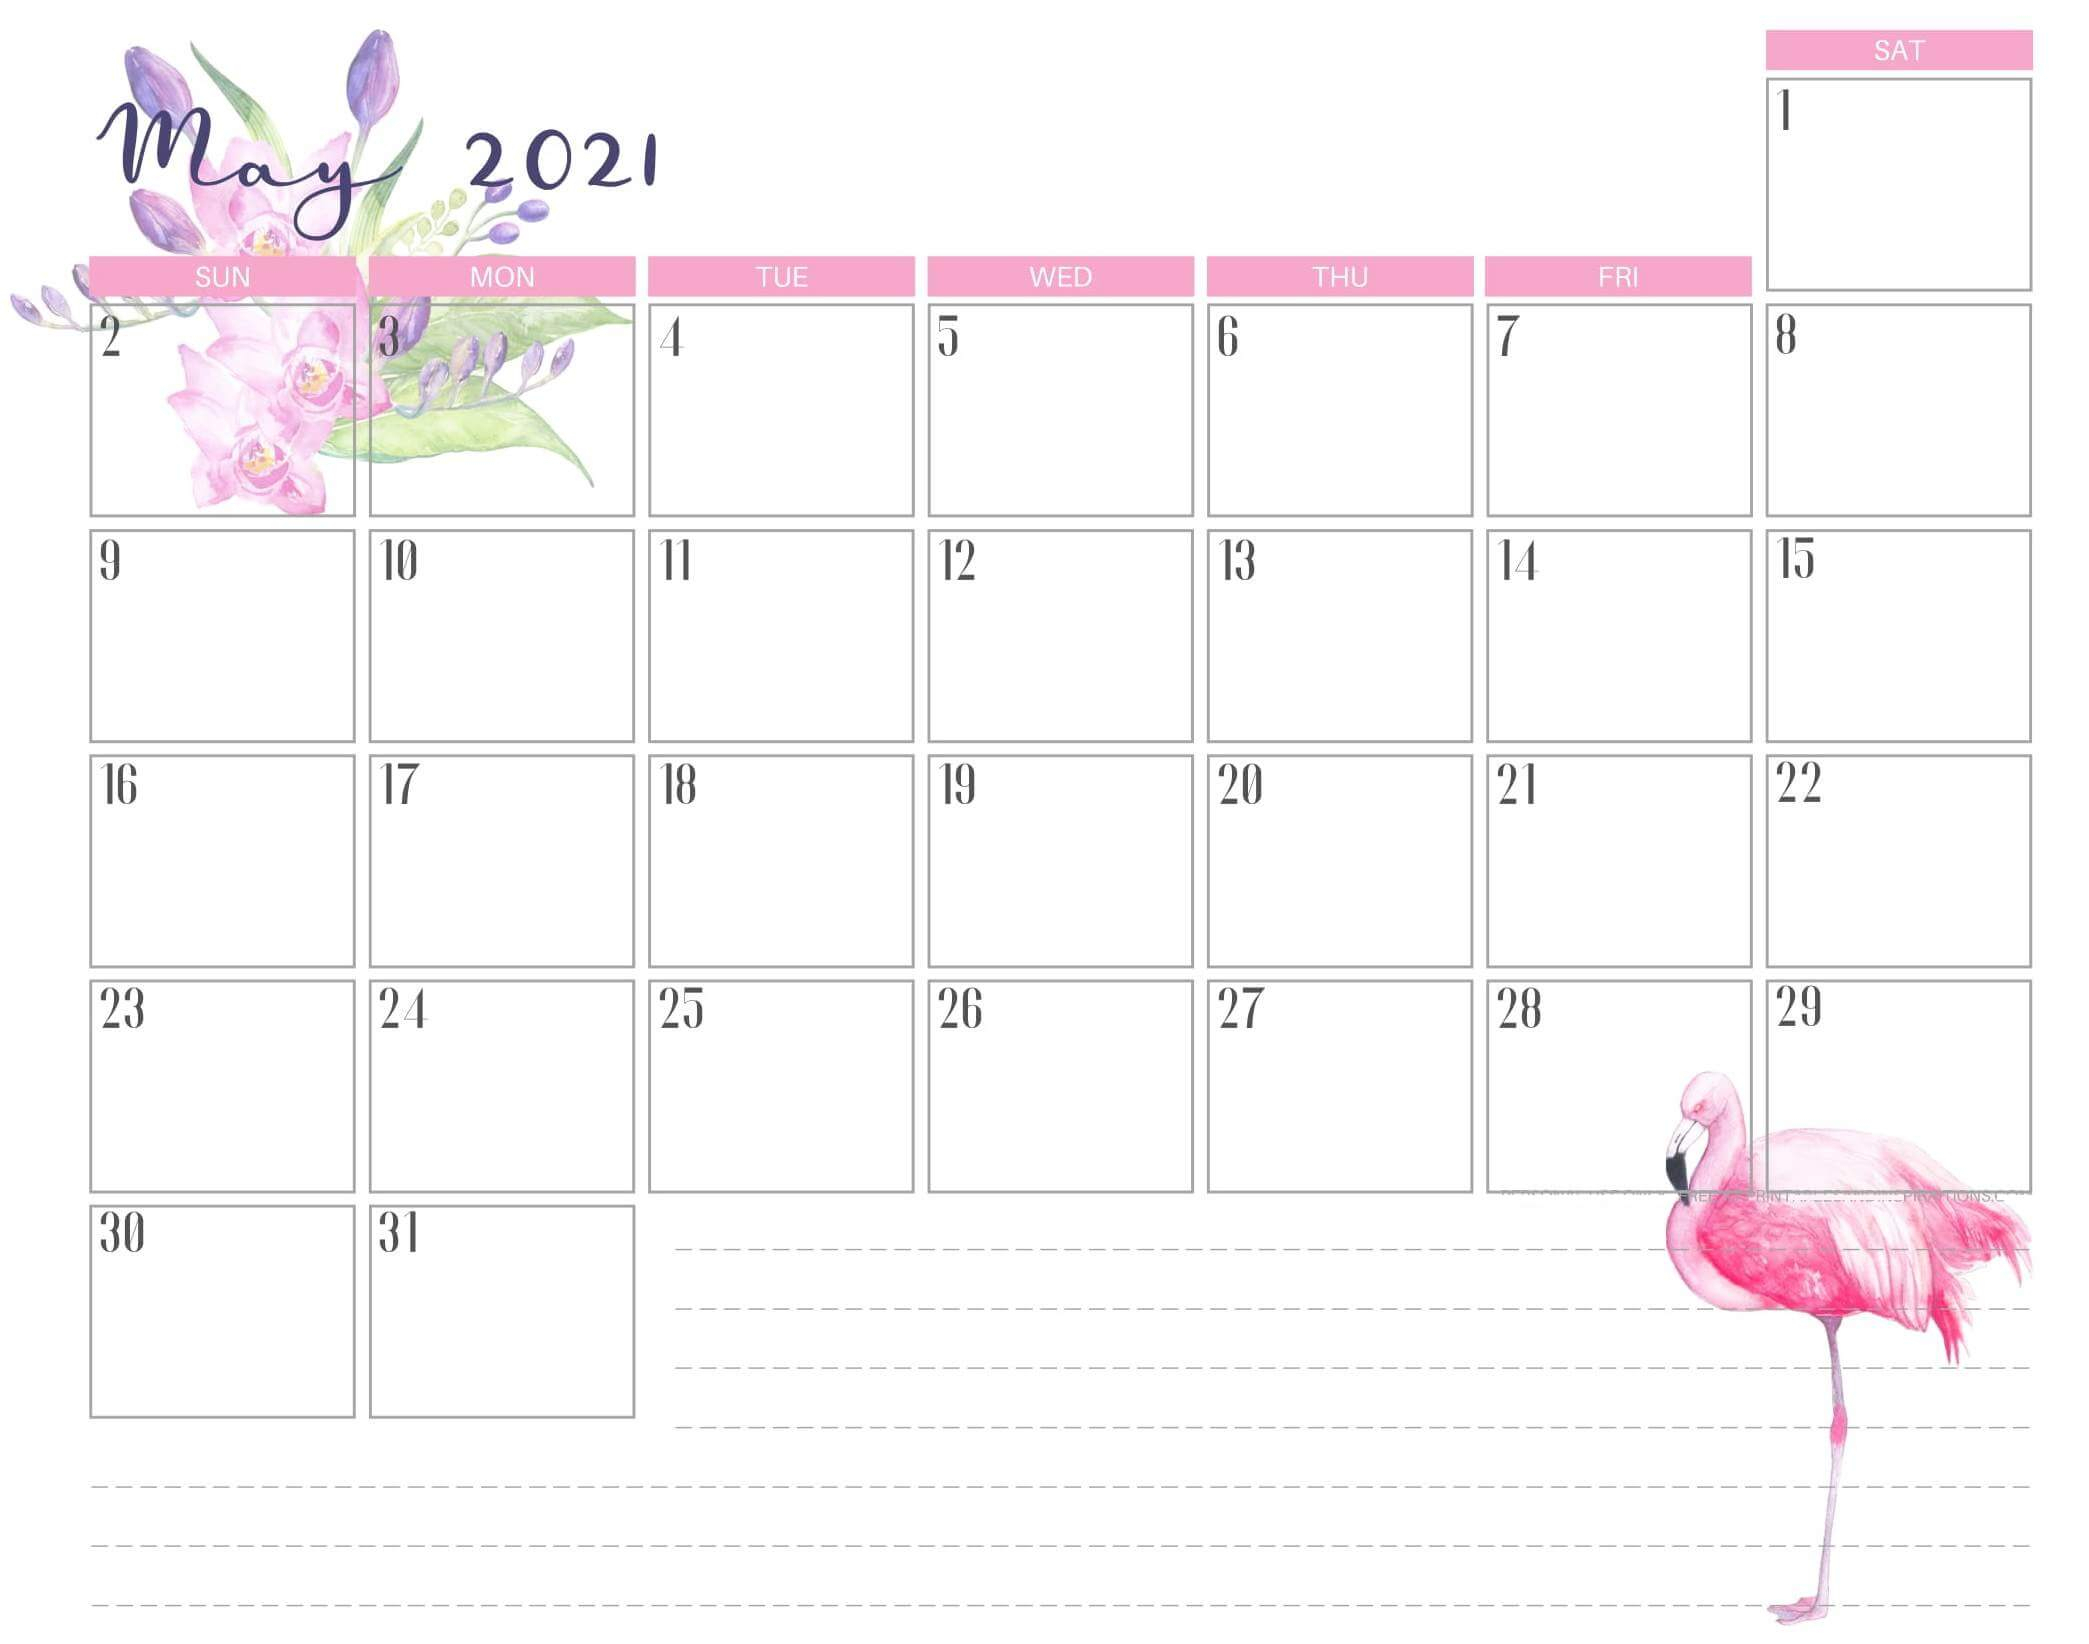 Cute May 2021 Calendar Design Template With Notes - One